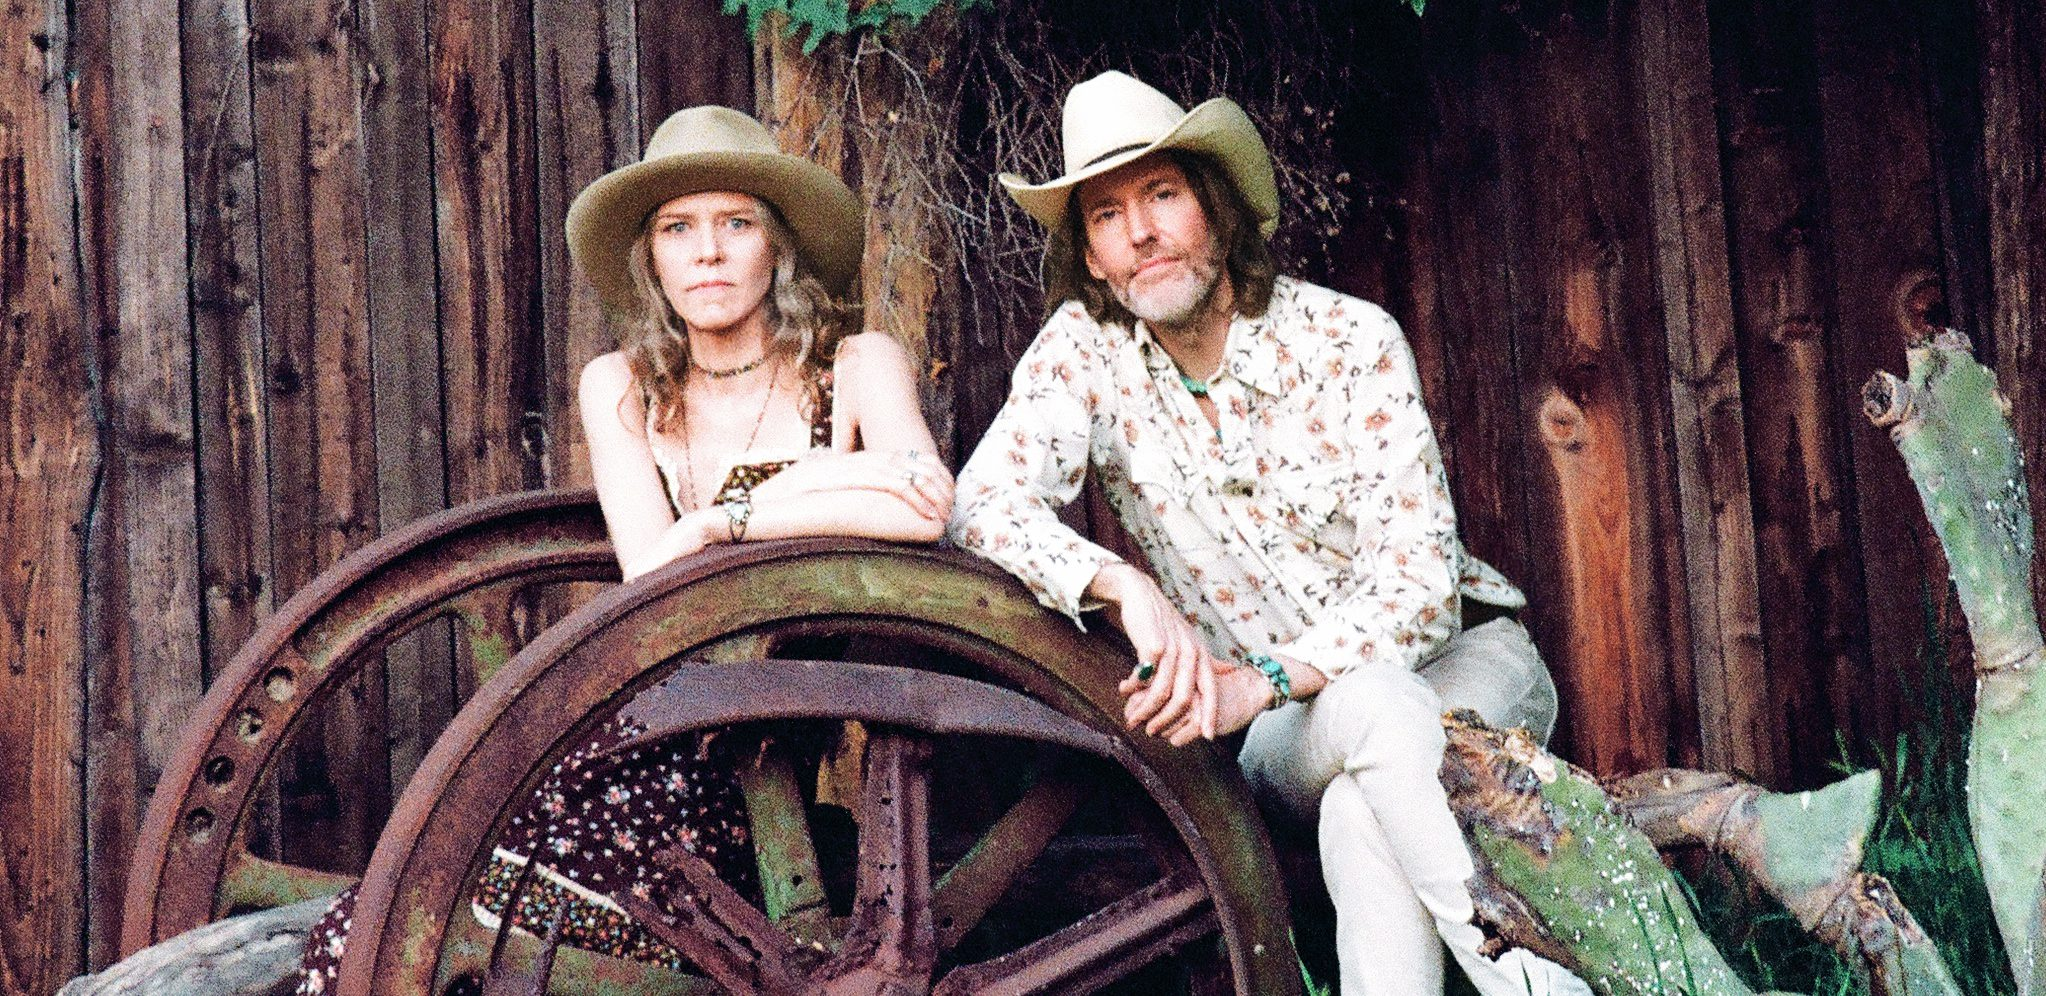 David Rawlings And Gillian Welch Tour